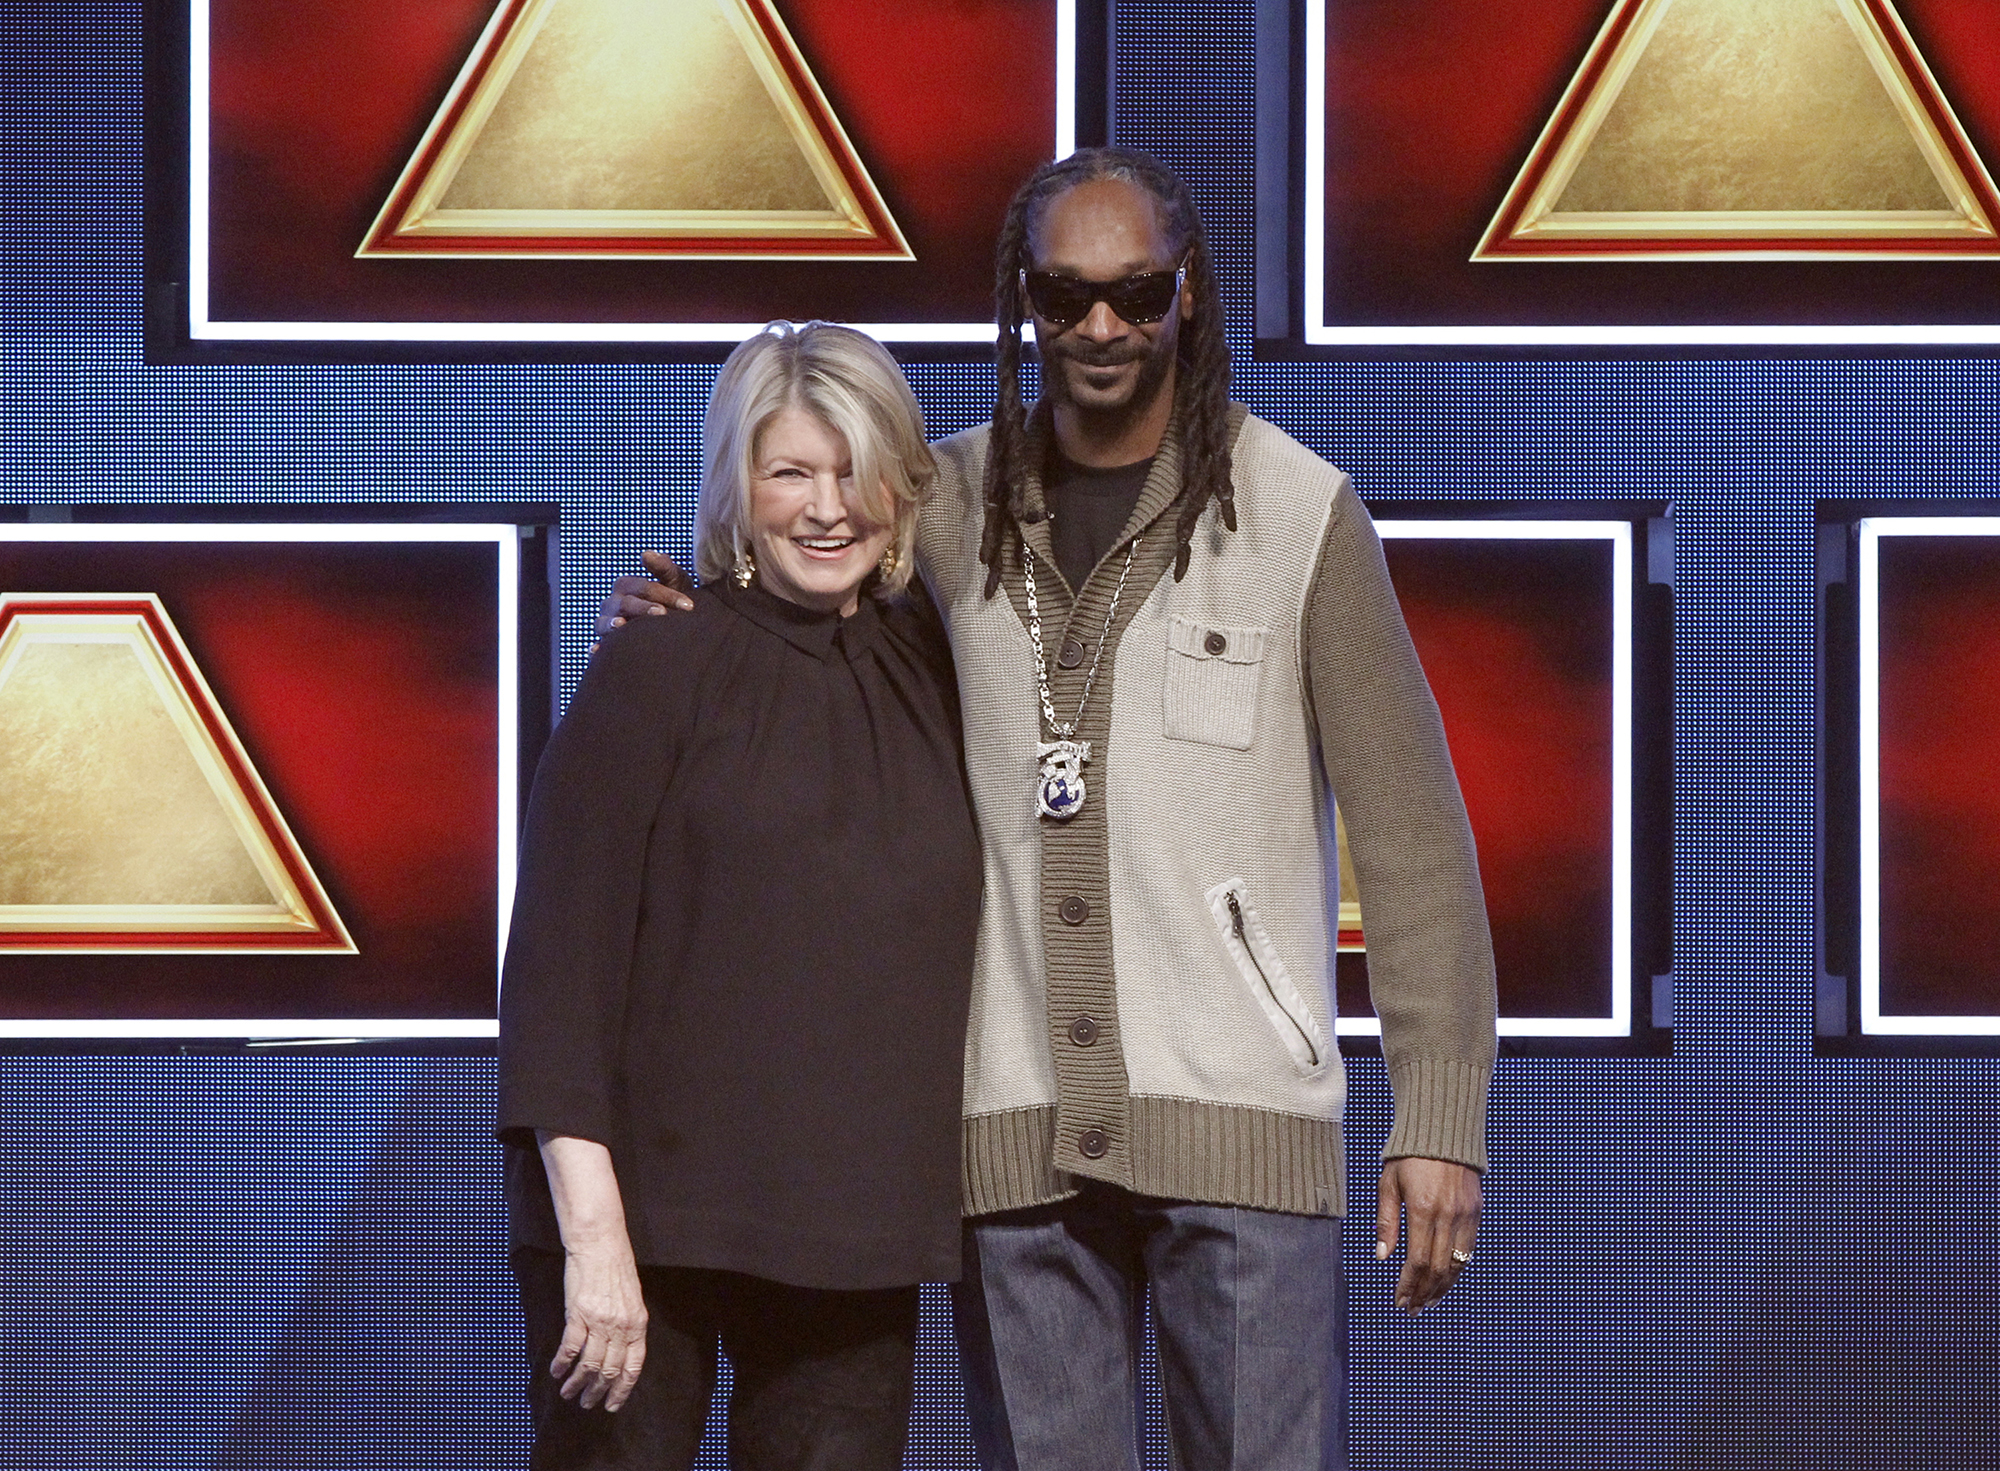 Martha Stewart and Snoop Dogg appear on ABC's  $100,000 Pyramid.   (ABC/ Lou Rocco)  MARTHA STEWART, SNOOP DOGG